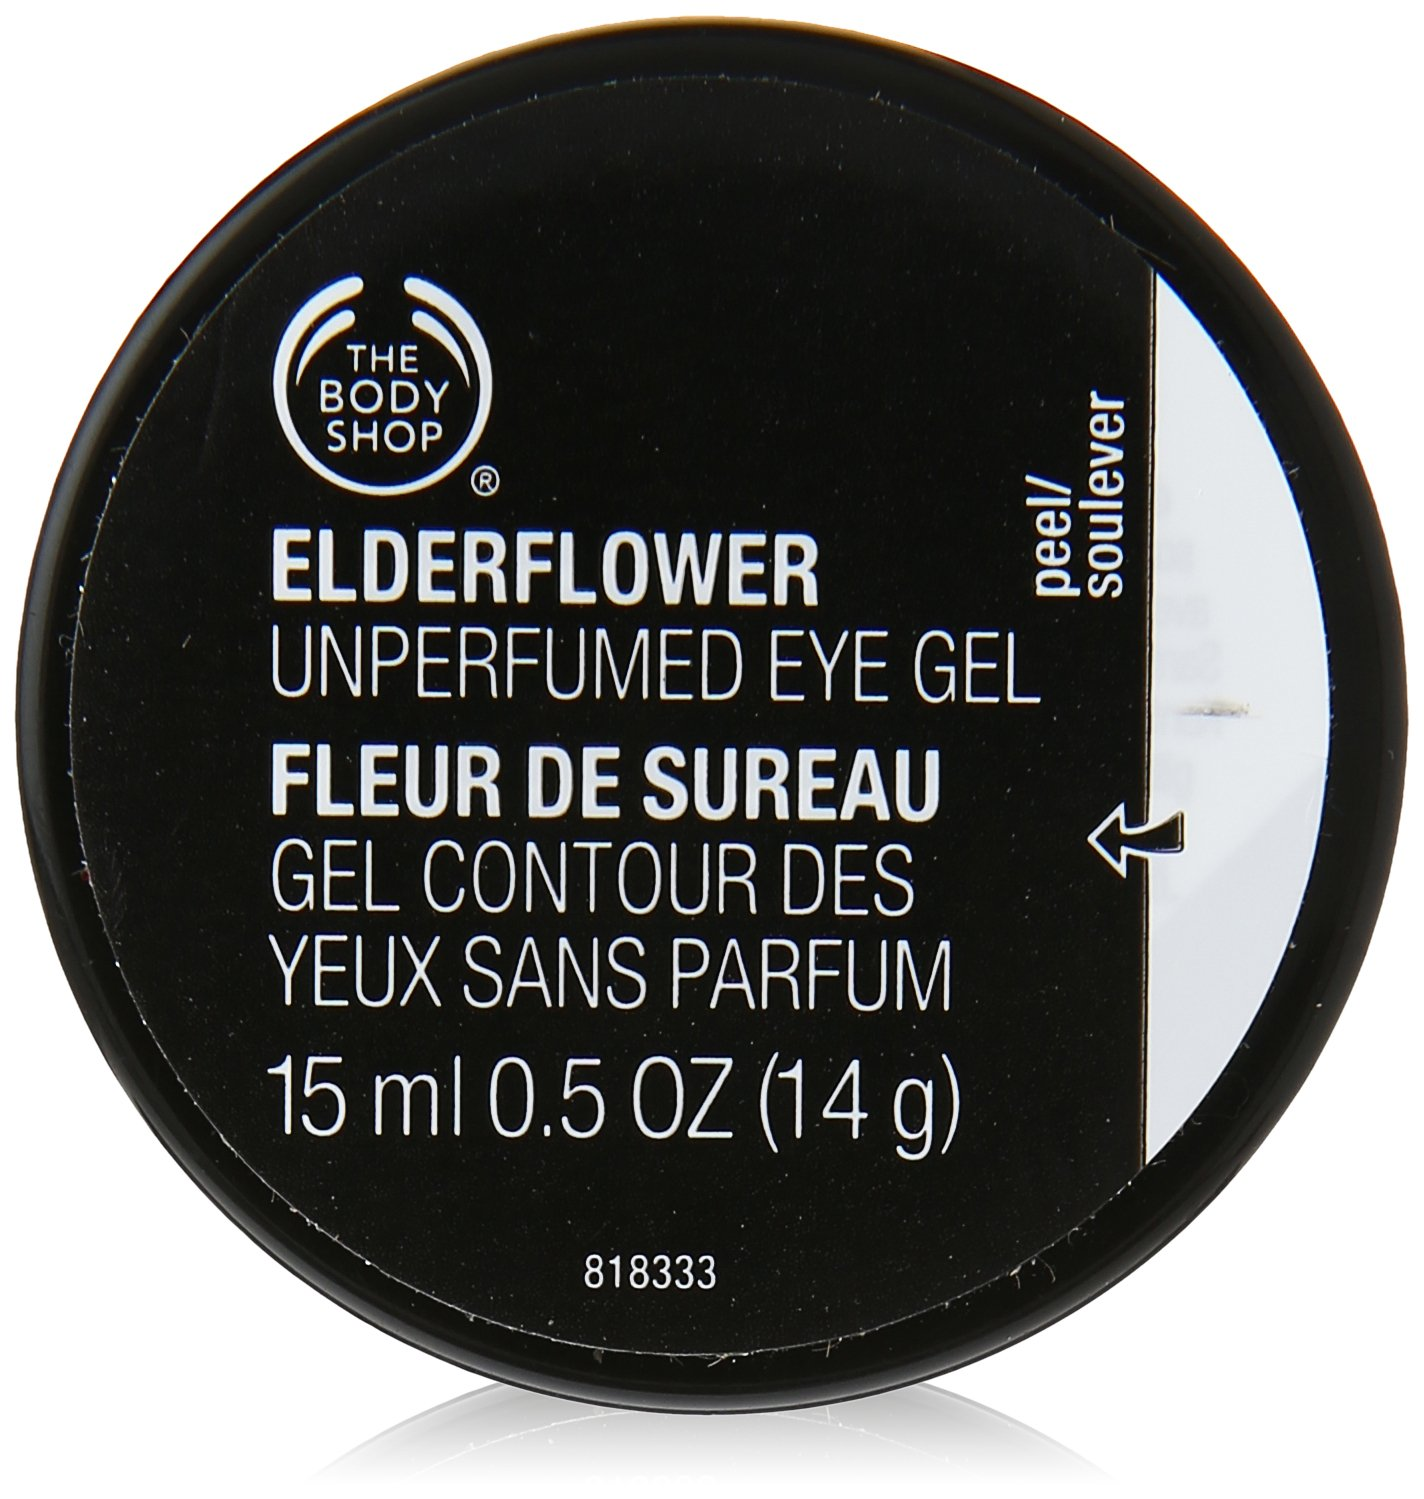 The Body Shop Elderflower Cooling Eye Gel, 0.5 Fl Oz